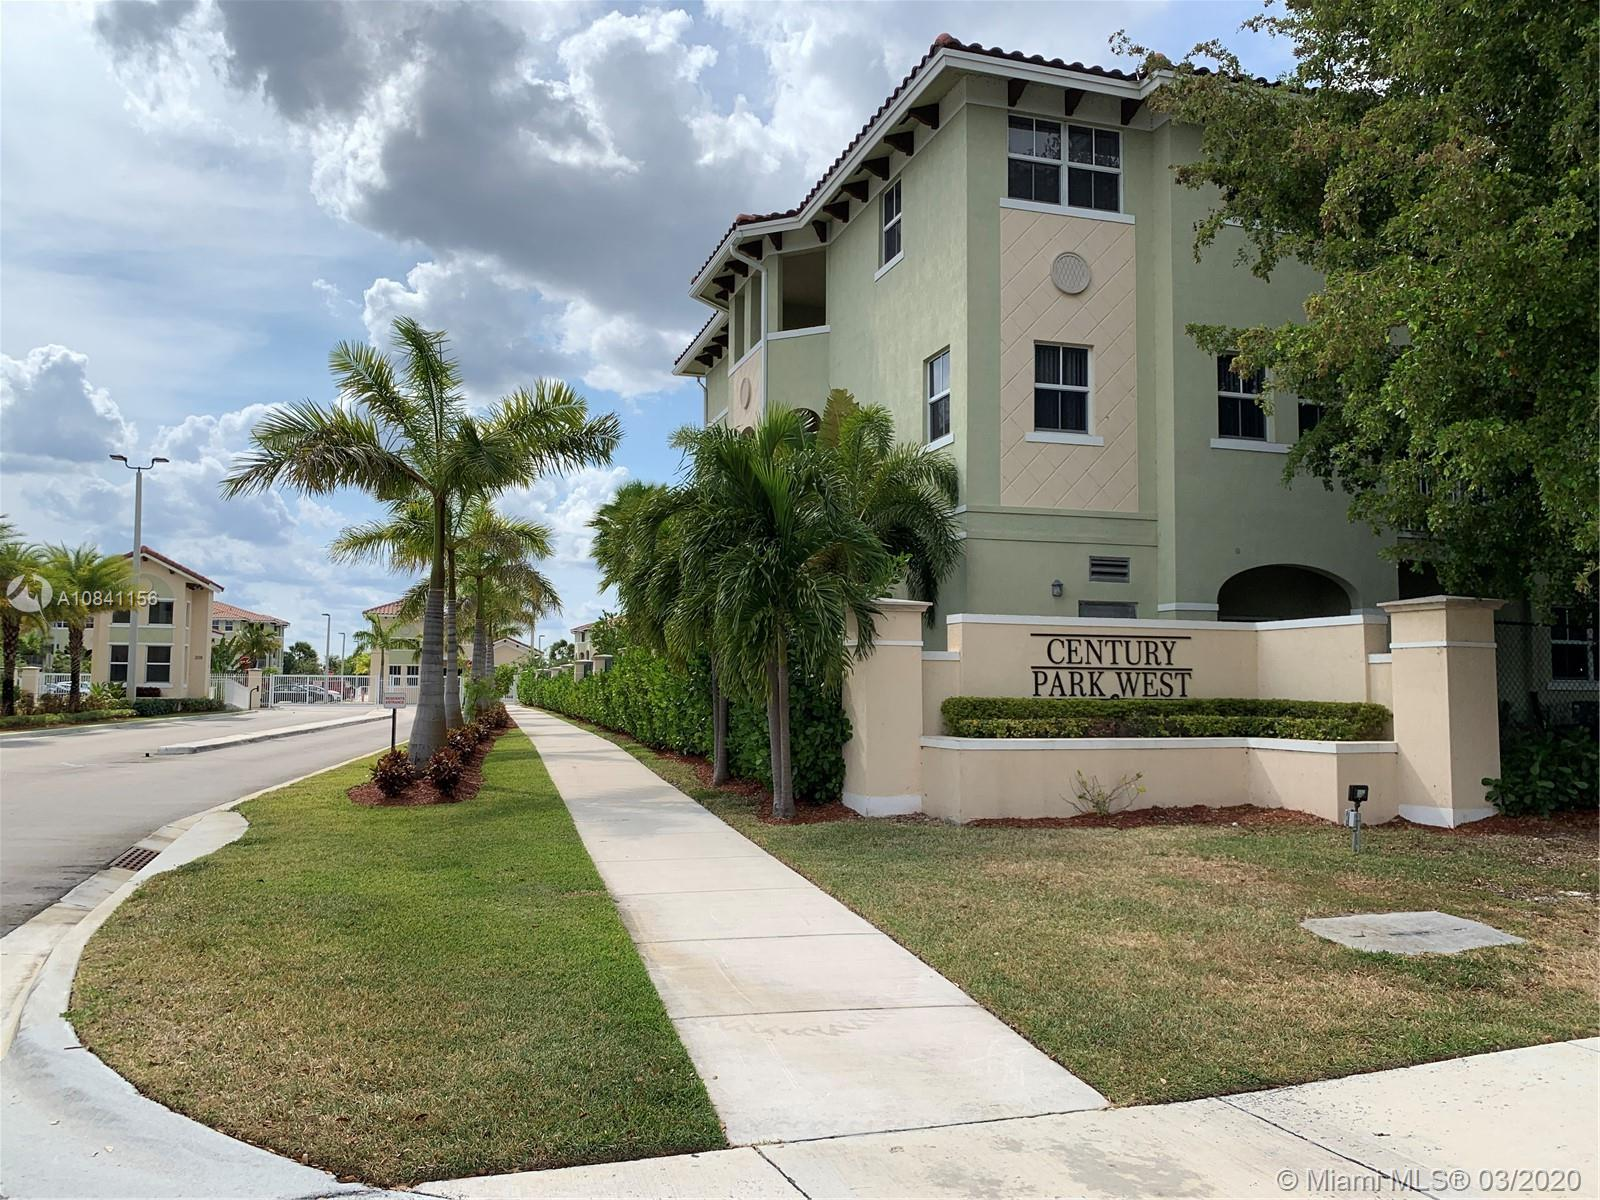 Two floors brand new Luxury Villa at Century Park West Gated Community. Modern & spacious 2 x 2 1/2 in the 2 floors. New appliances, A/C, Dishwasher & electrical water heater. Features include: formal living and dining. Masters room with walking closet, New Ceramic floor and vinyl wood floor. Two parking spaces assigned and additional available. GREAT LOCATION!!! Excellent neighborhood & centrally located near the airport, schools, shops and the expressway..!!